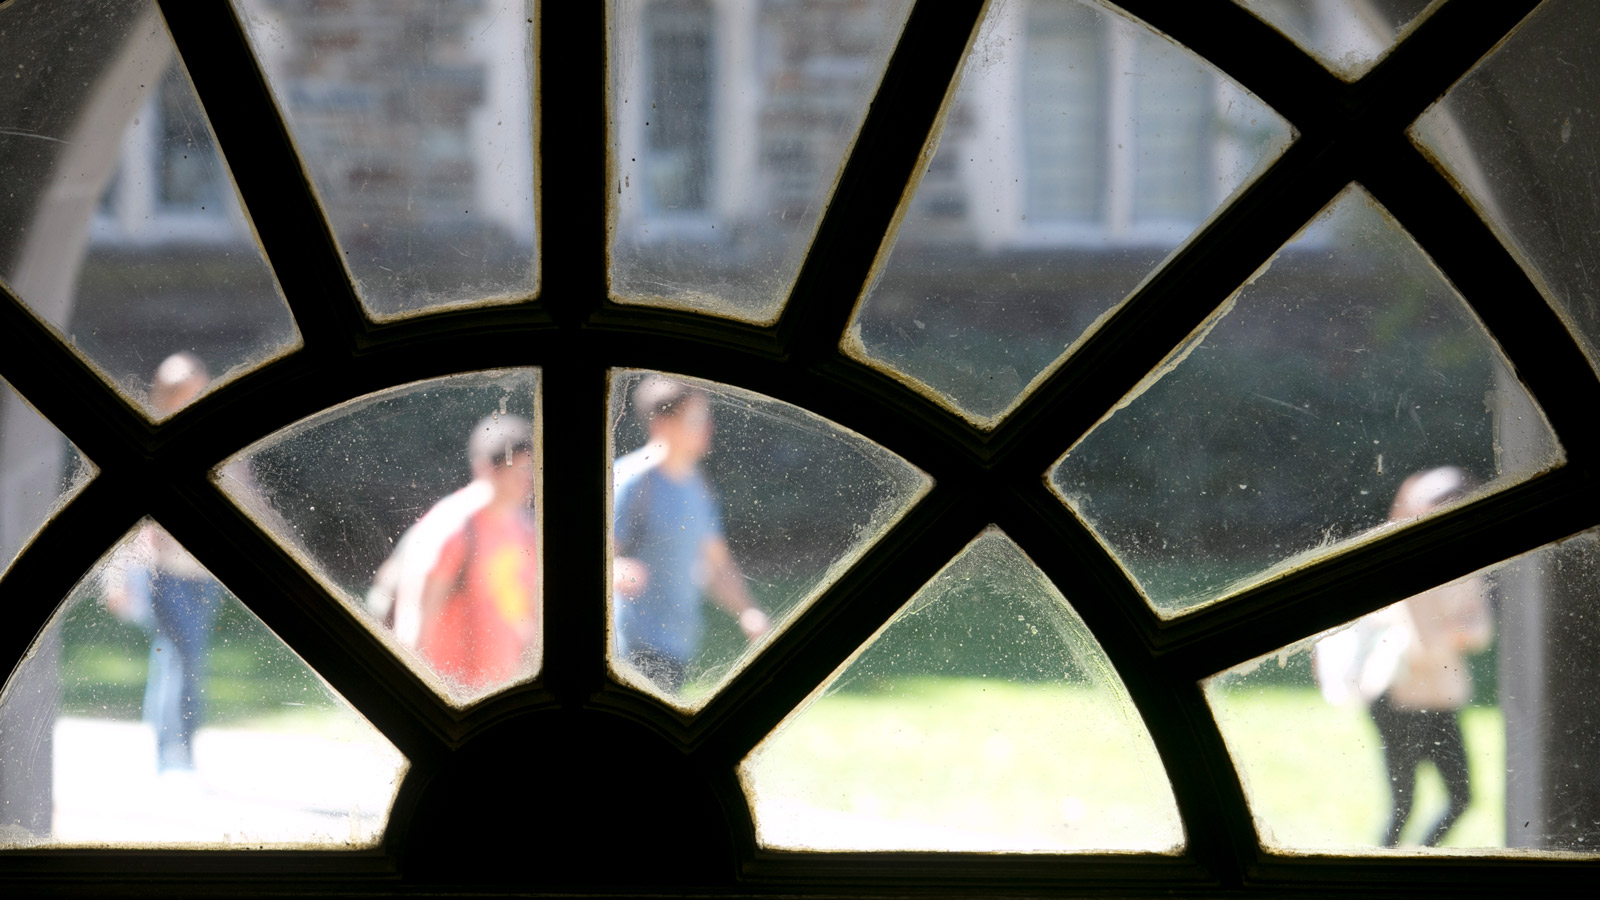 Image of blurry students walking outside as seen through an antique window.